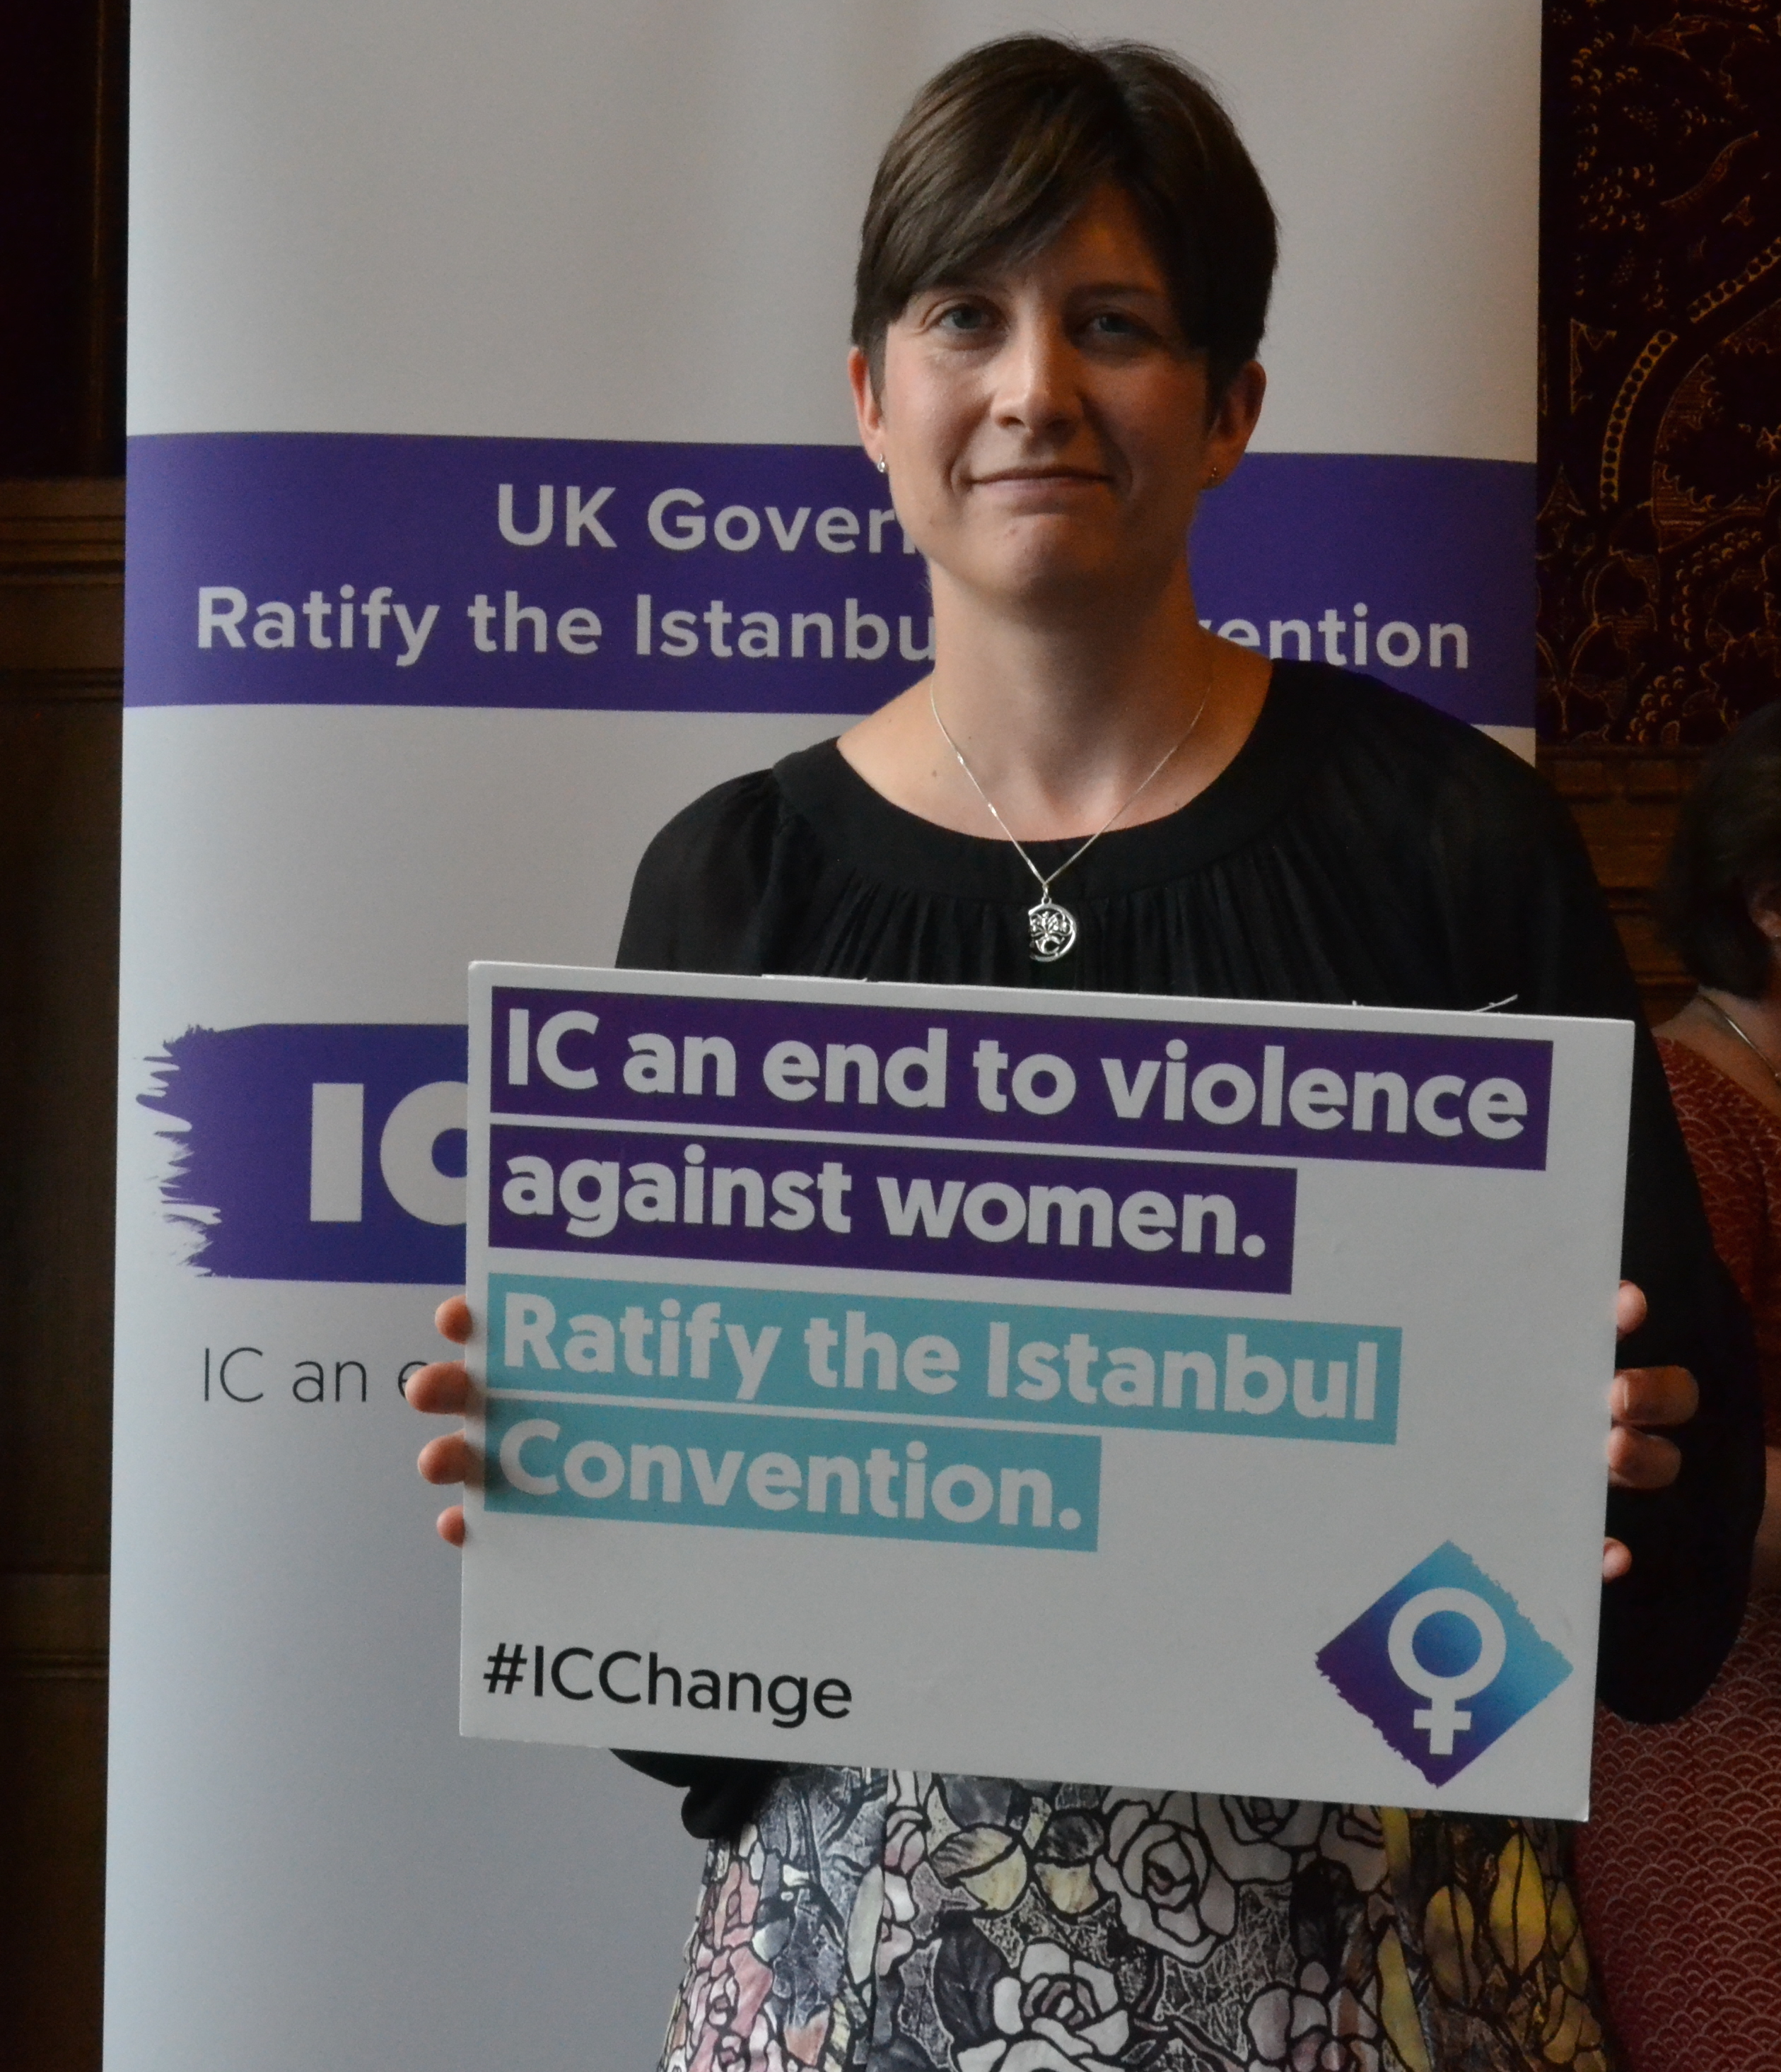 Alison Thewliss MP calls on the UK Government to ratify the Istanbul Convention and end violence against women